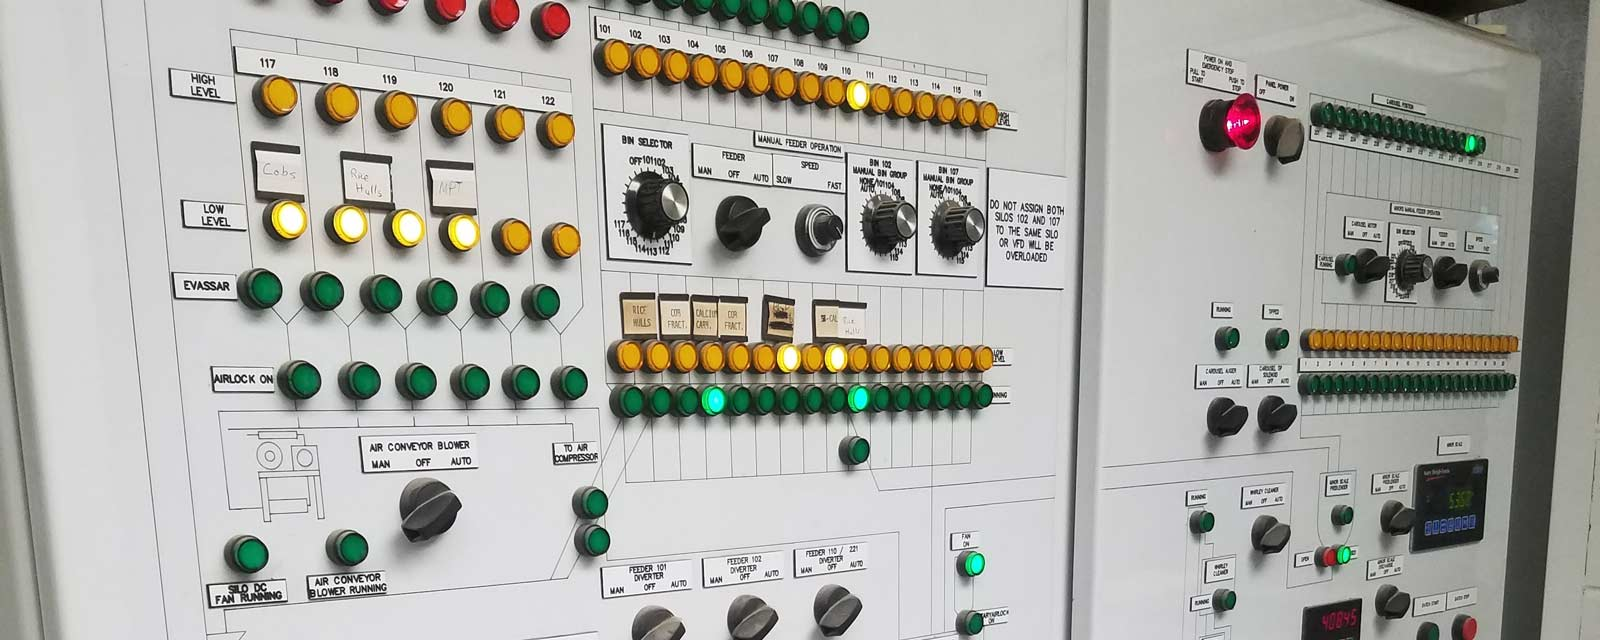 Agri-King Batching System Control Panel